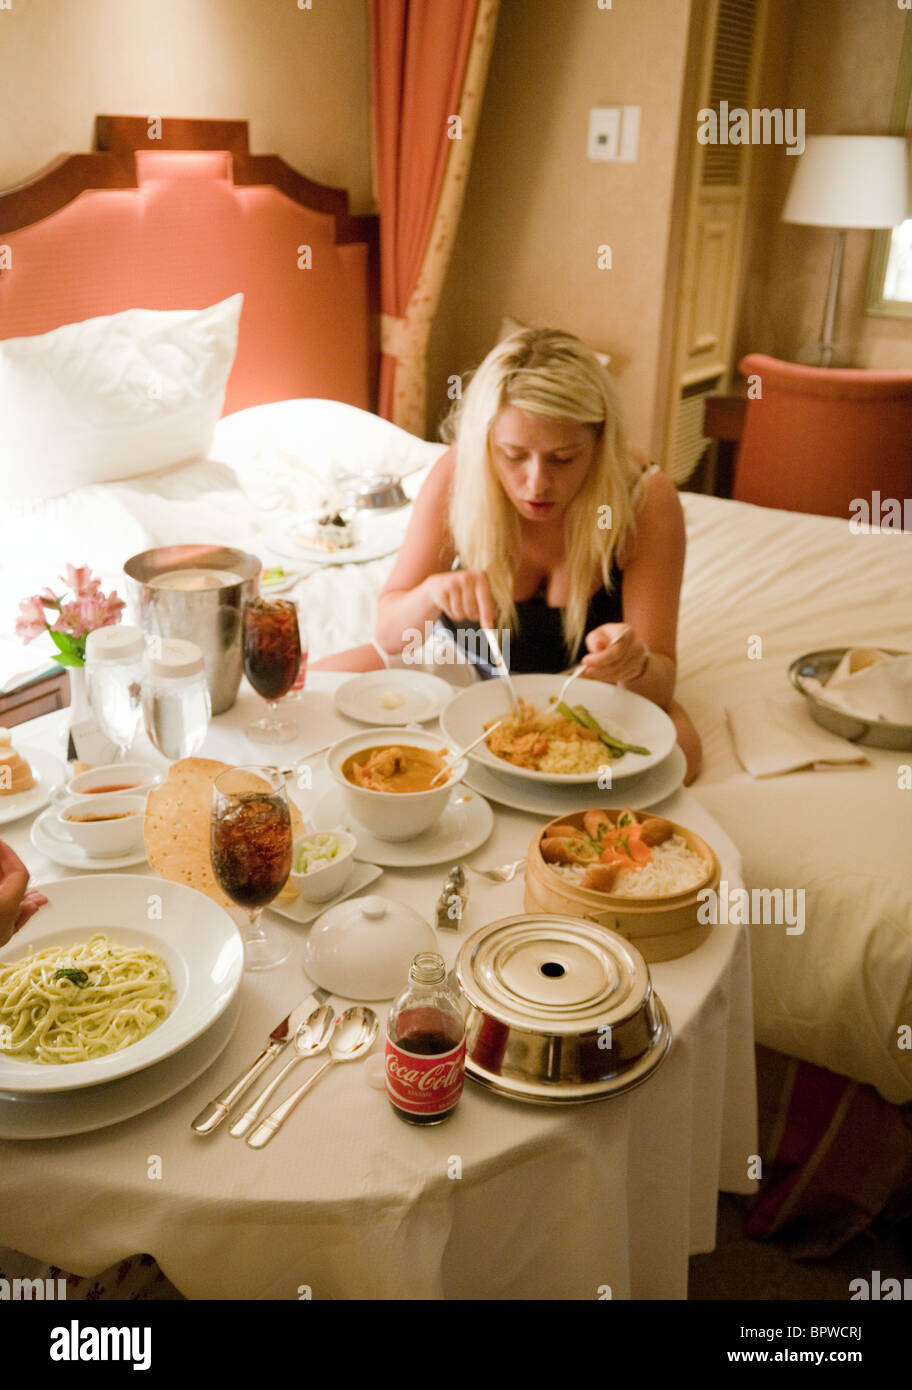 Teenage Girls Enjoying A Meal In Their Hotel Room From Room Service Stock Photo Alamy